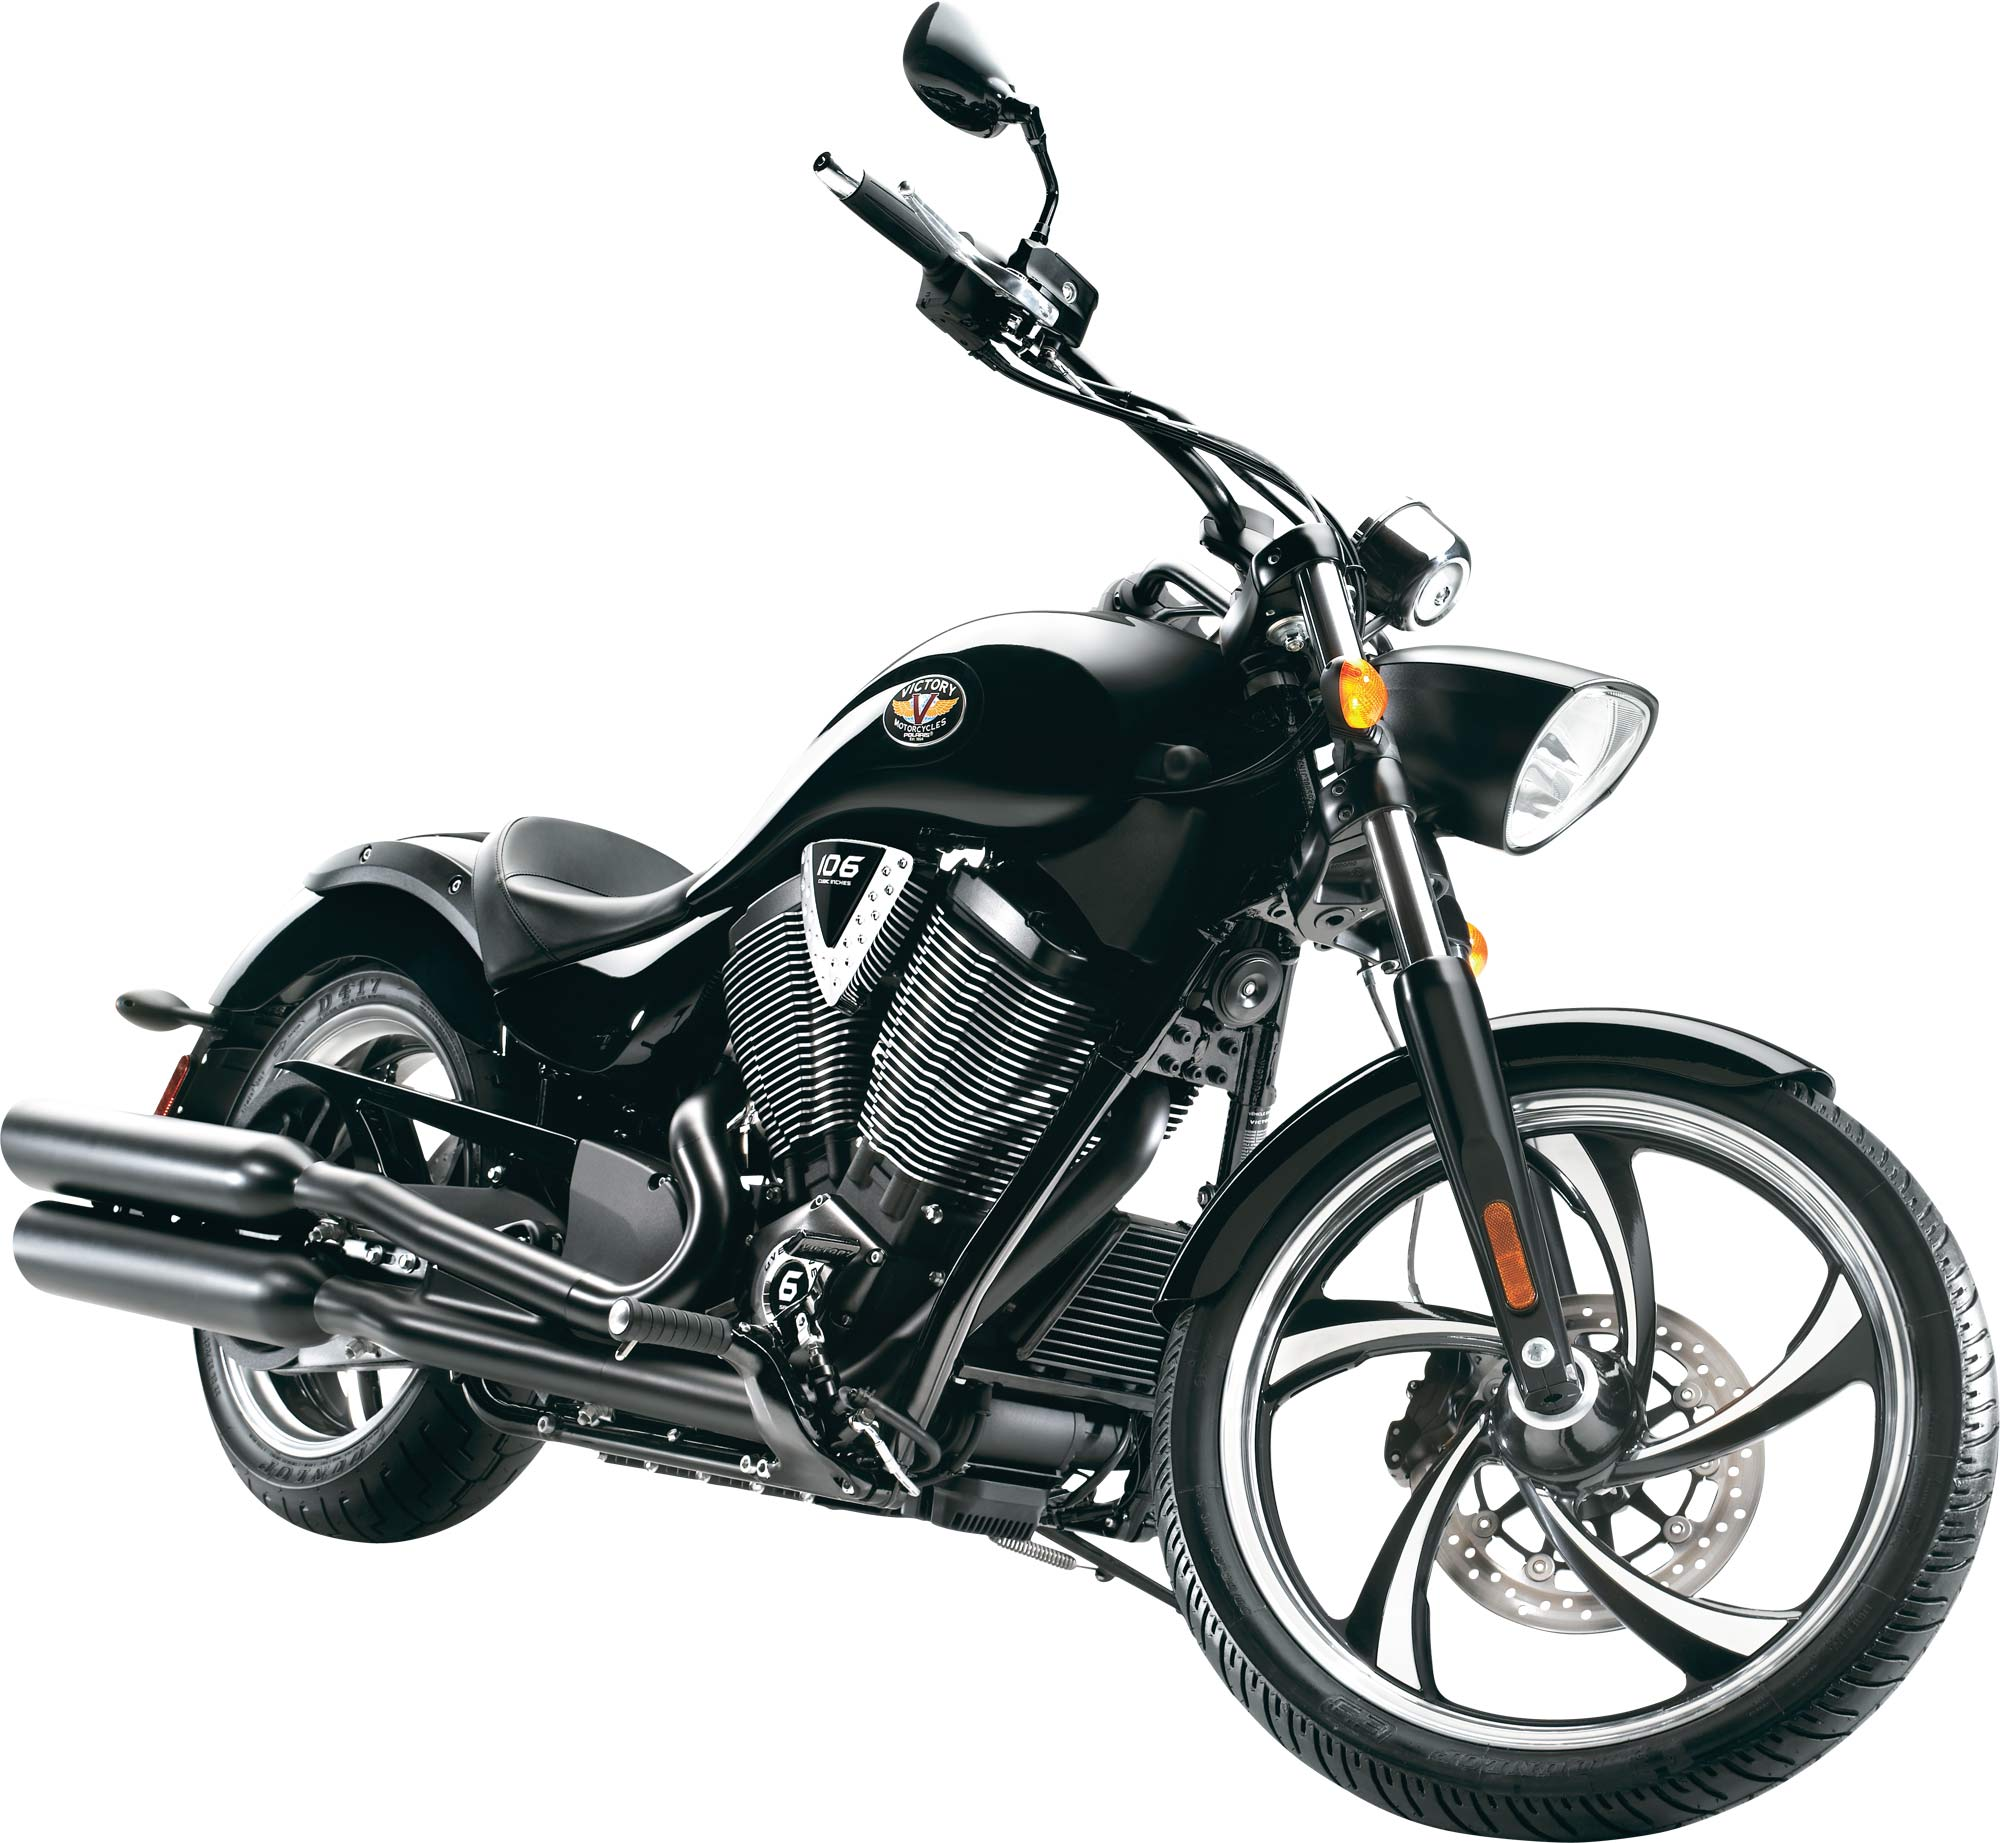 2012 Victory Vegas 8 Ball Review